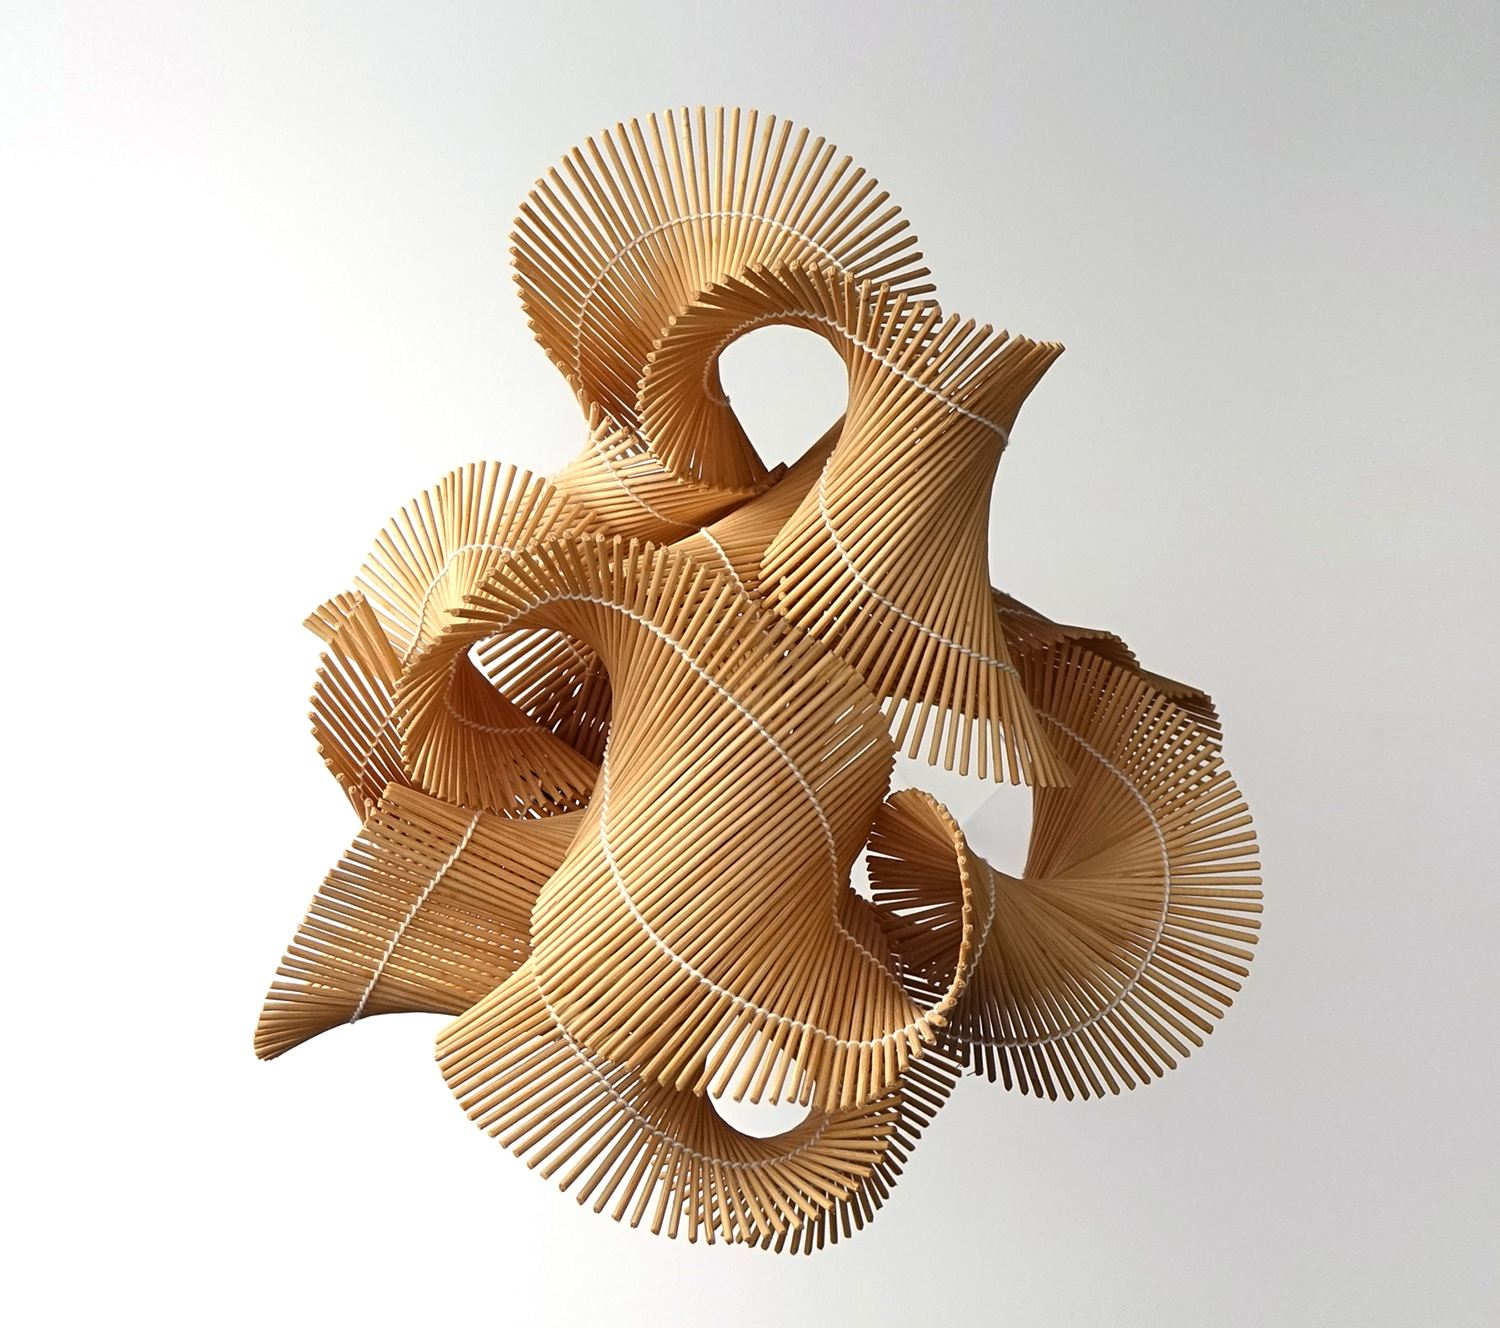 Wood Storm Desktop Installation by Naai-Jung Shih, sculpture